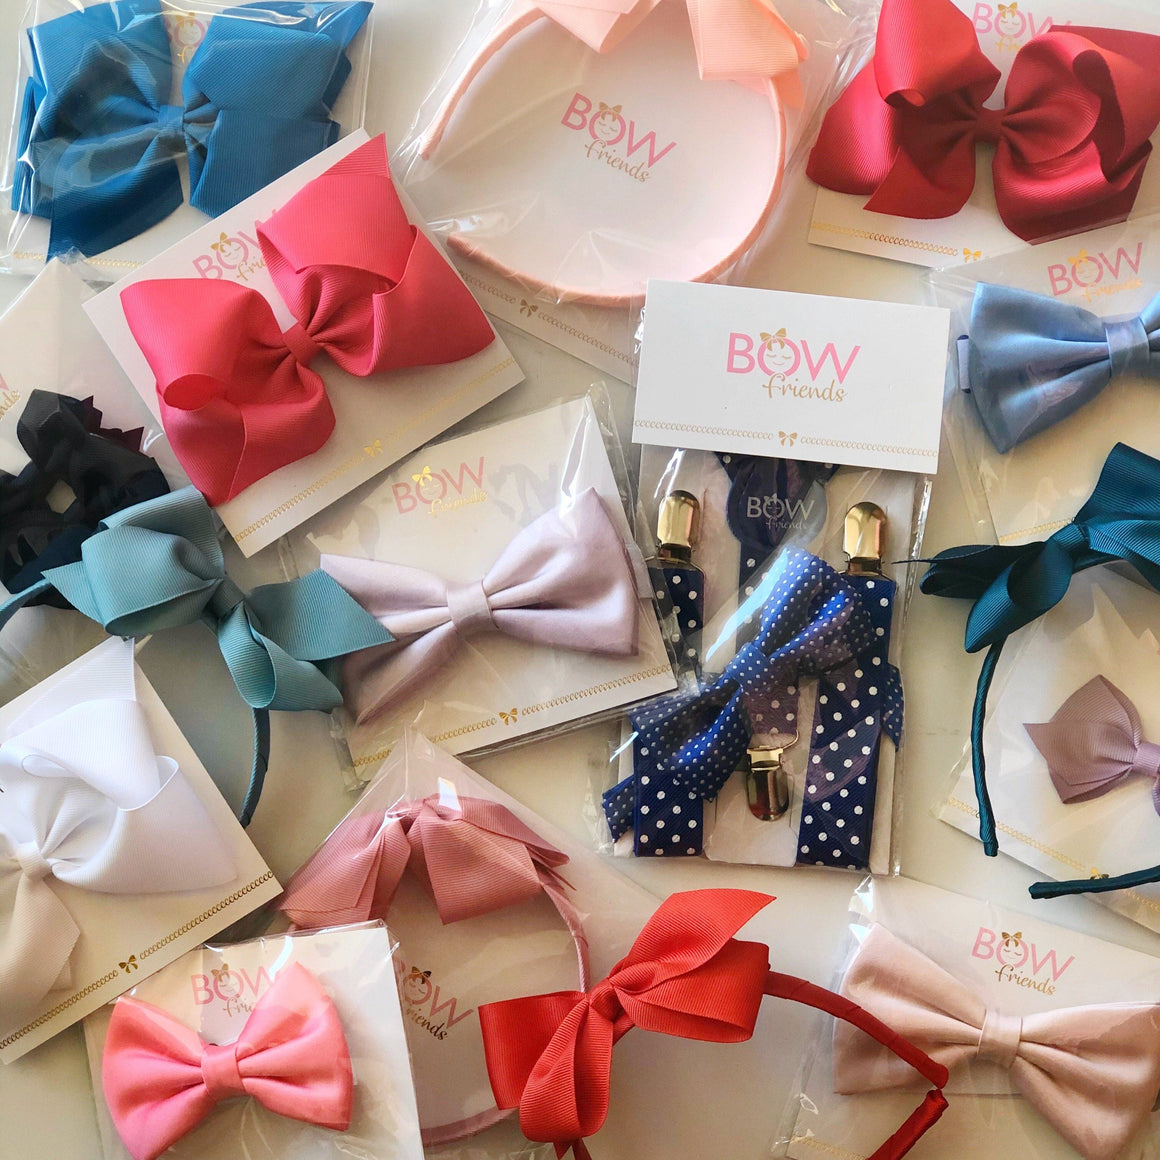 BOW FRIENDS - HAIR BOWS MINI 2-PACK, ACCESSORIES, We love you Connie - Bon + Co. Party Studio